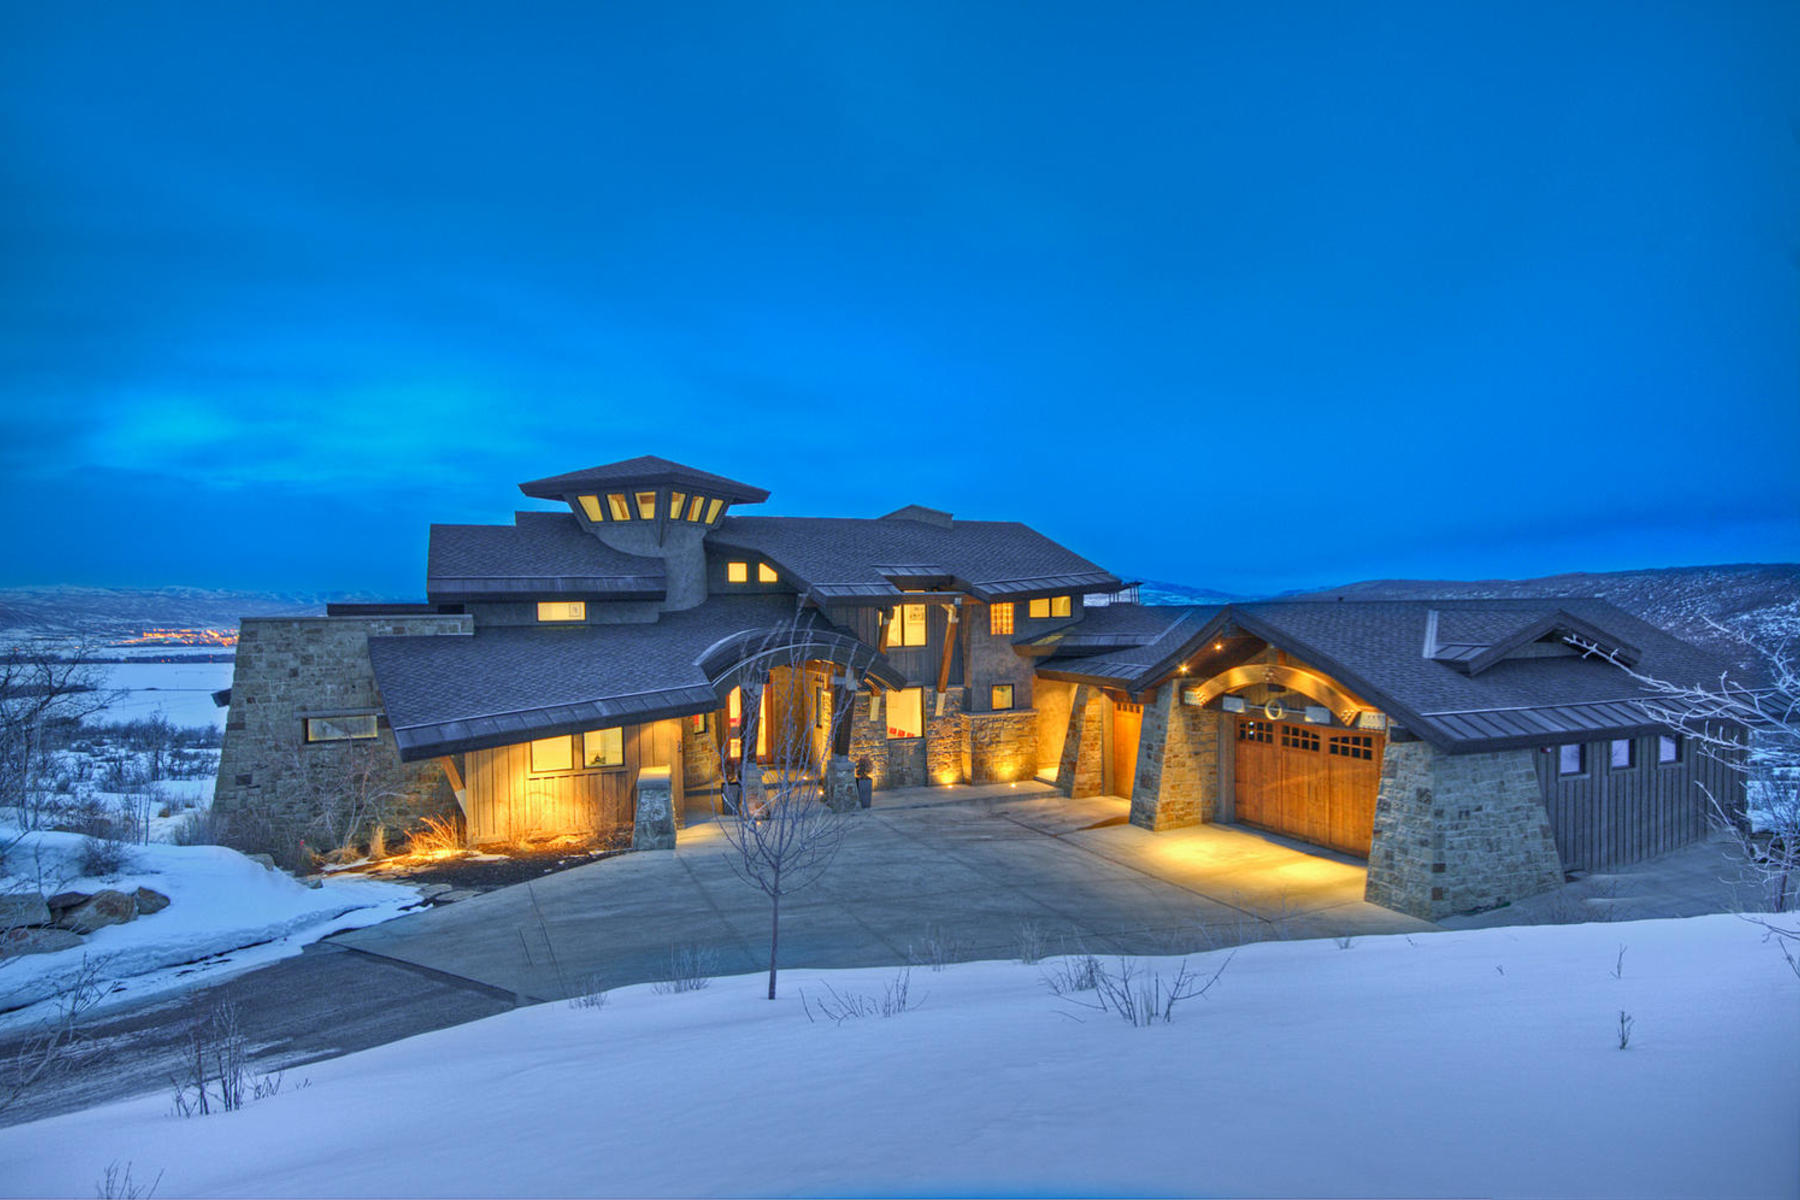 Single Family Home for Sale at Modern Living with a Cozy Park City Feel 25 Marilyn Ct Park City, Utah, 84060 United States